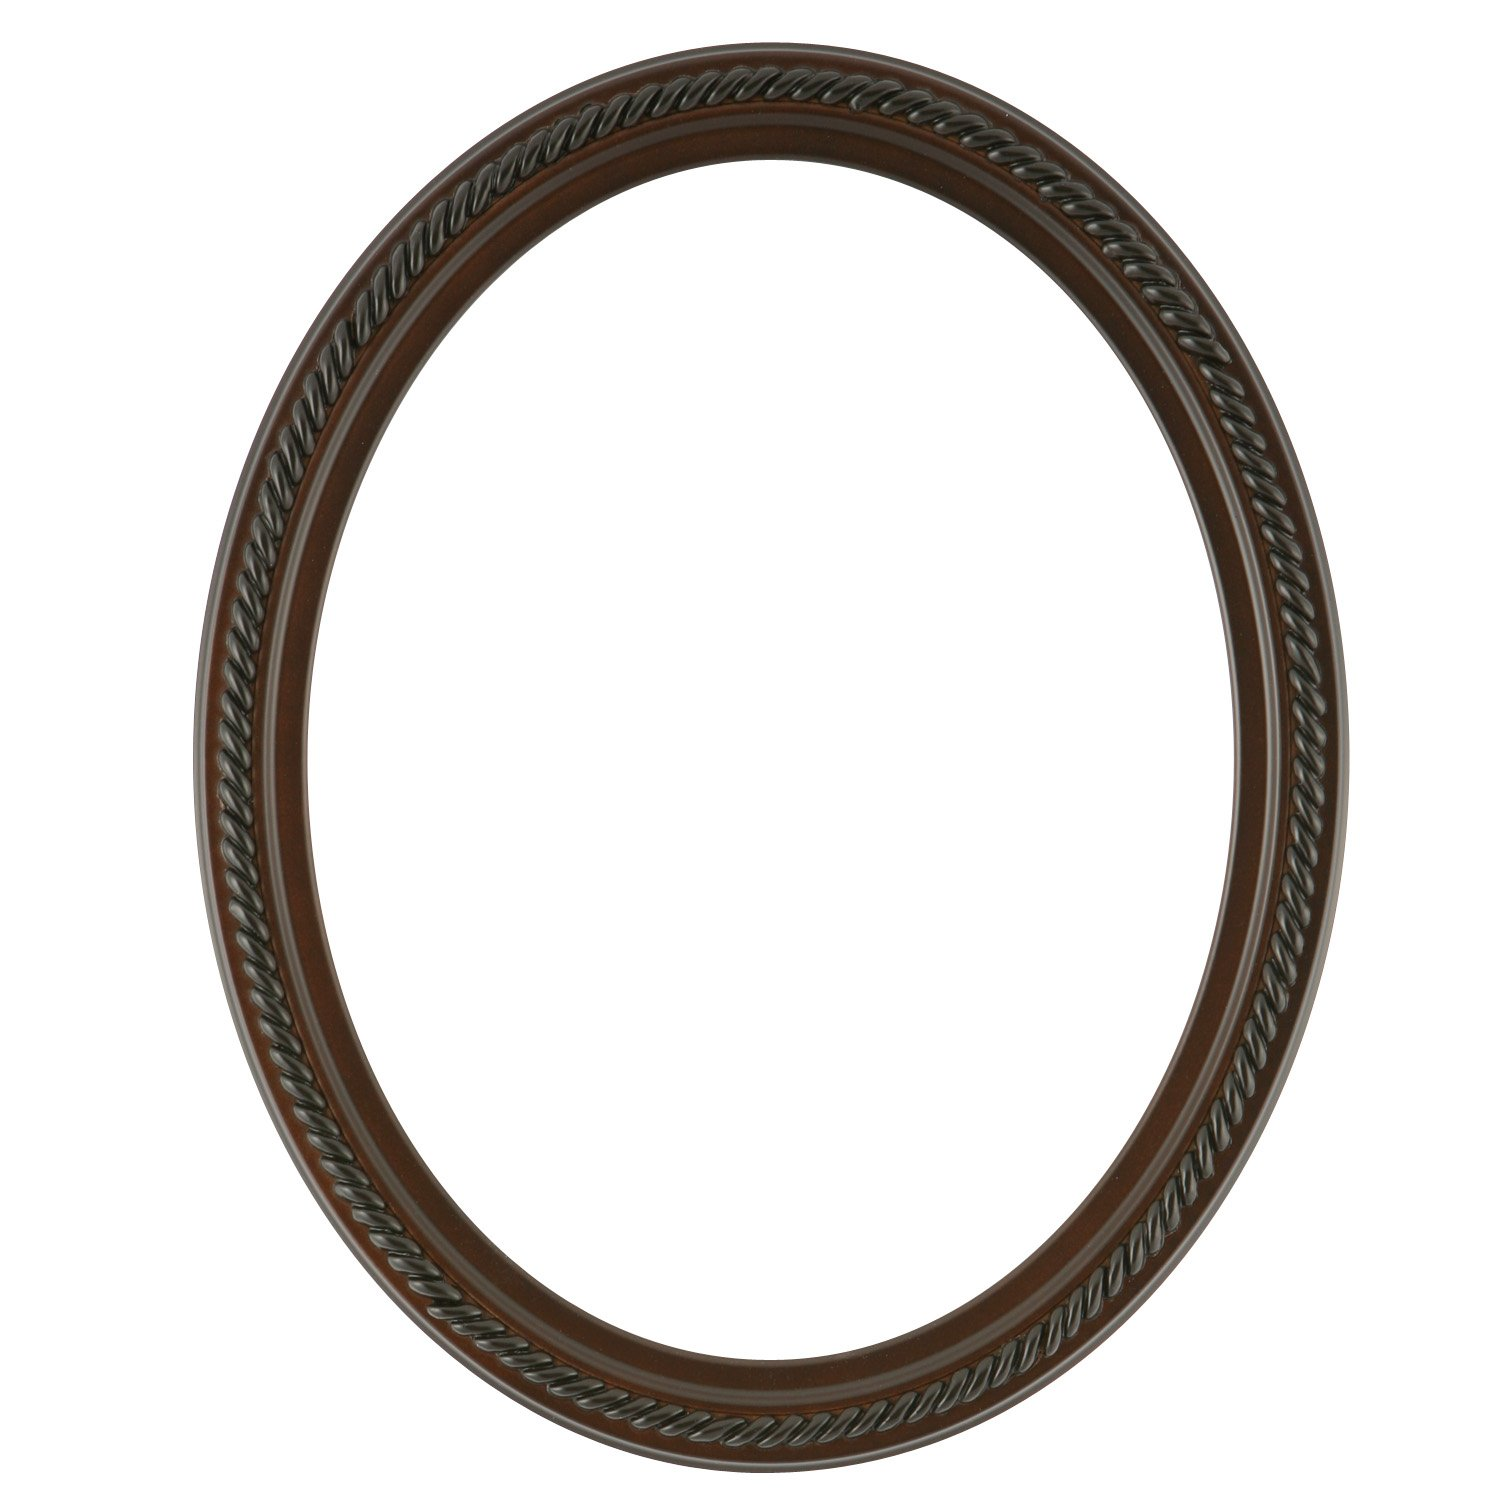 Oval Beveled Wall Mirror for Home Decor – Santa Fe Style – Walnut – 22×32 outside dimensions